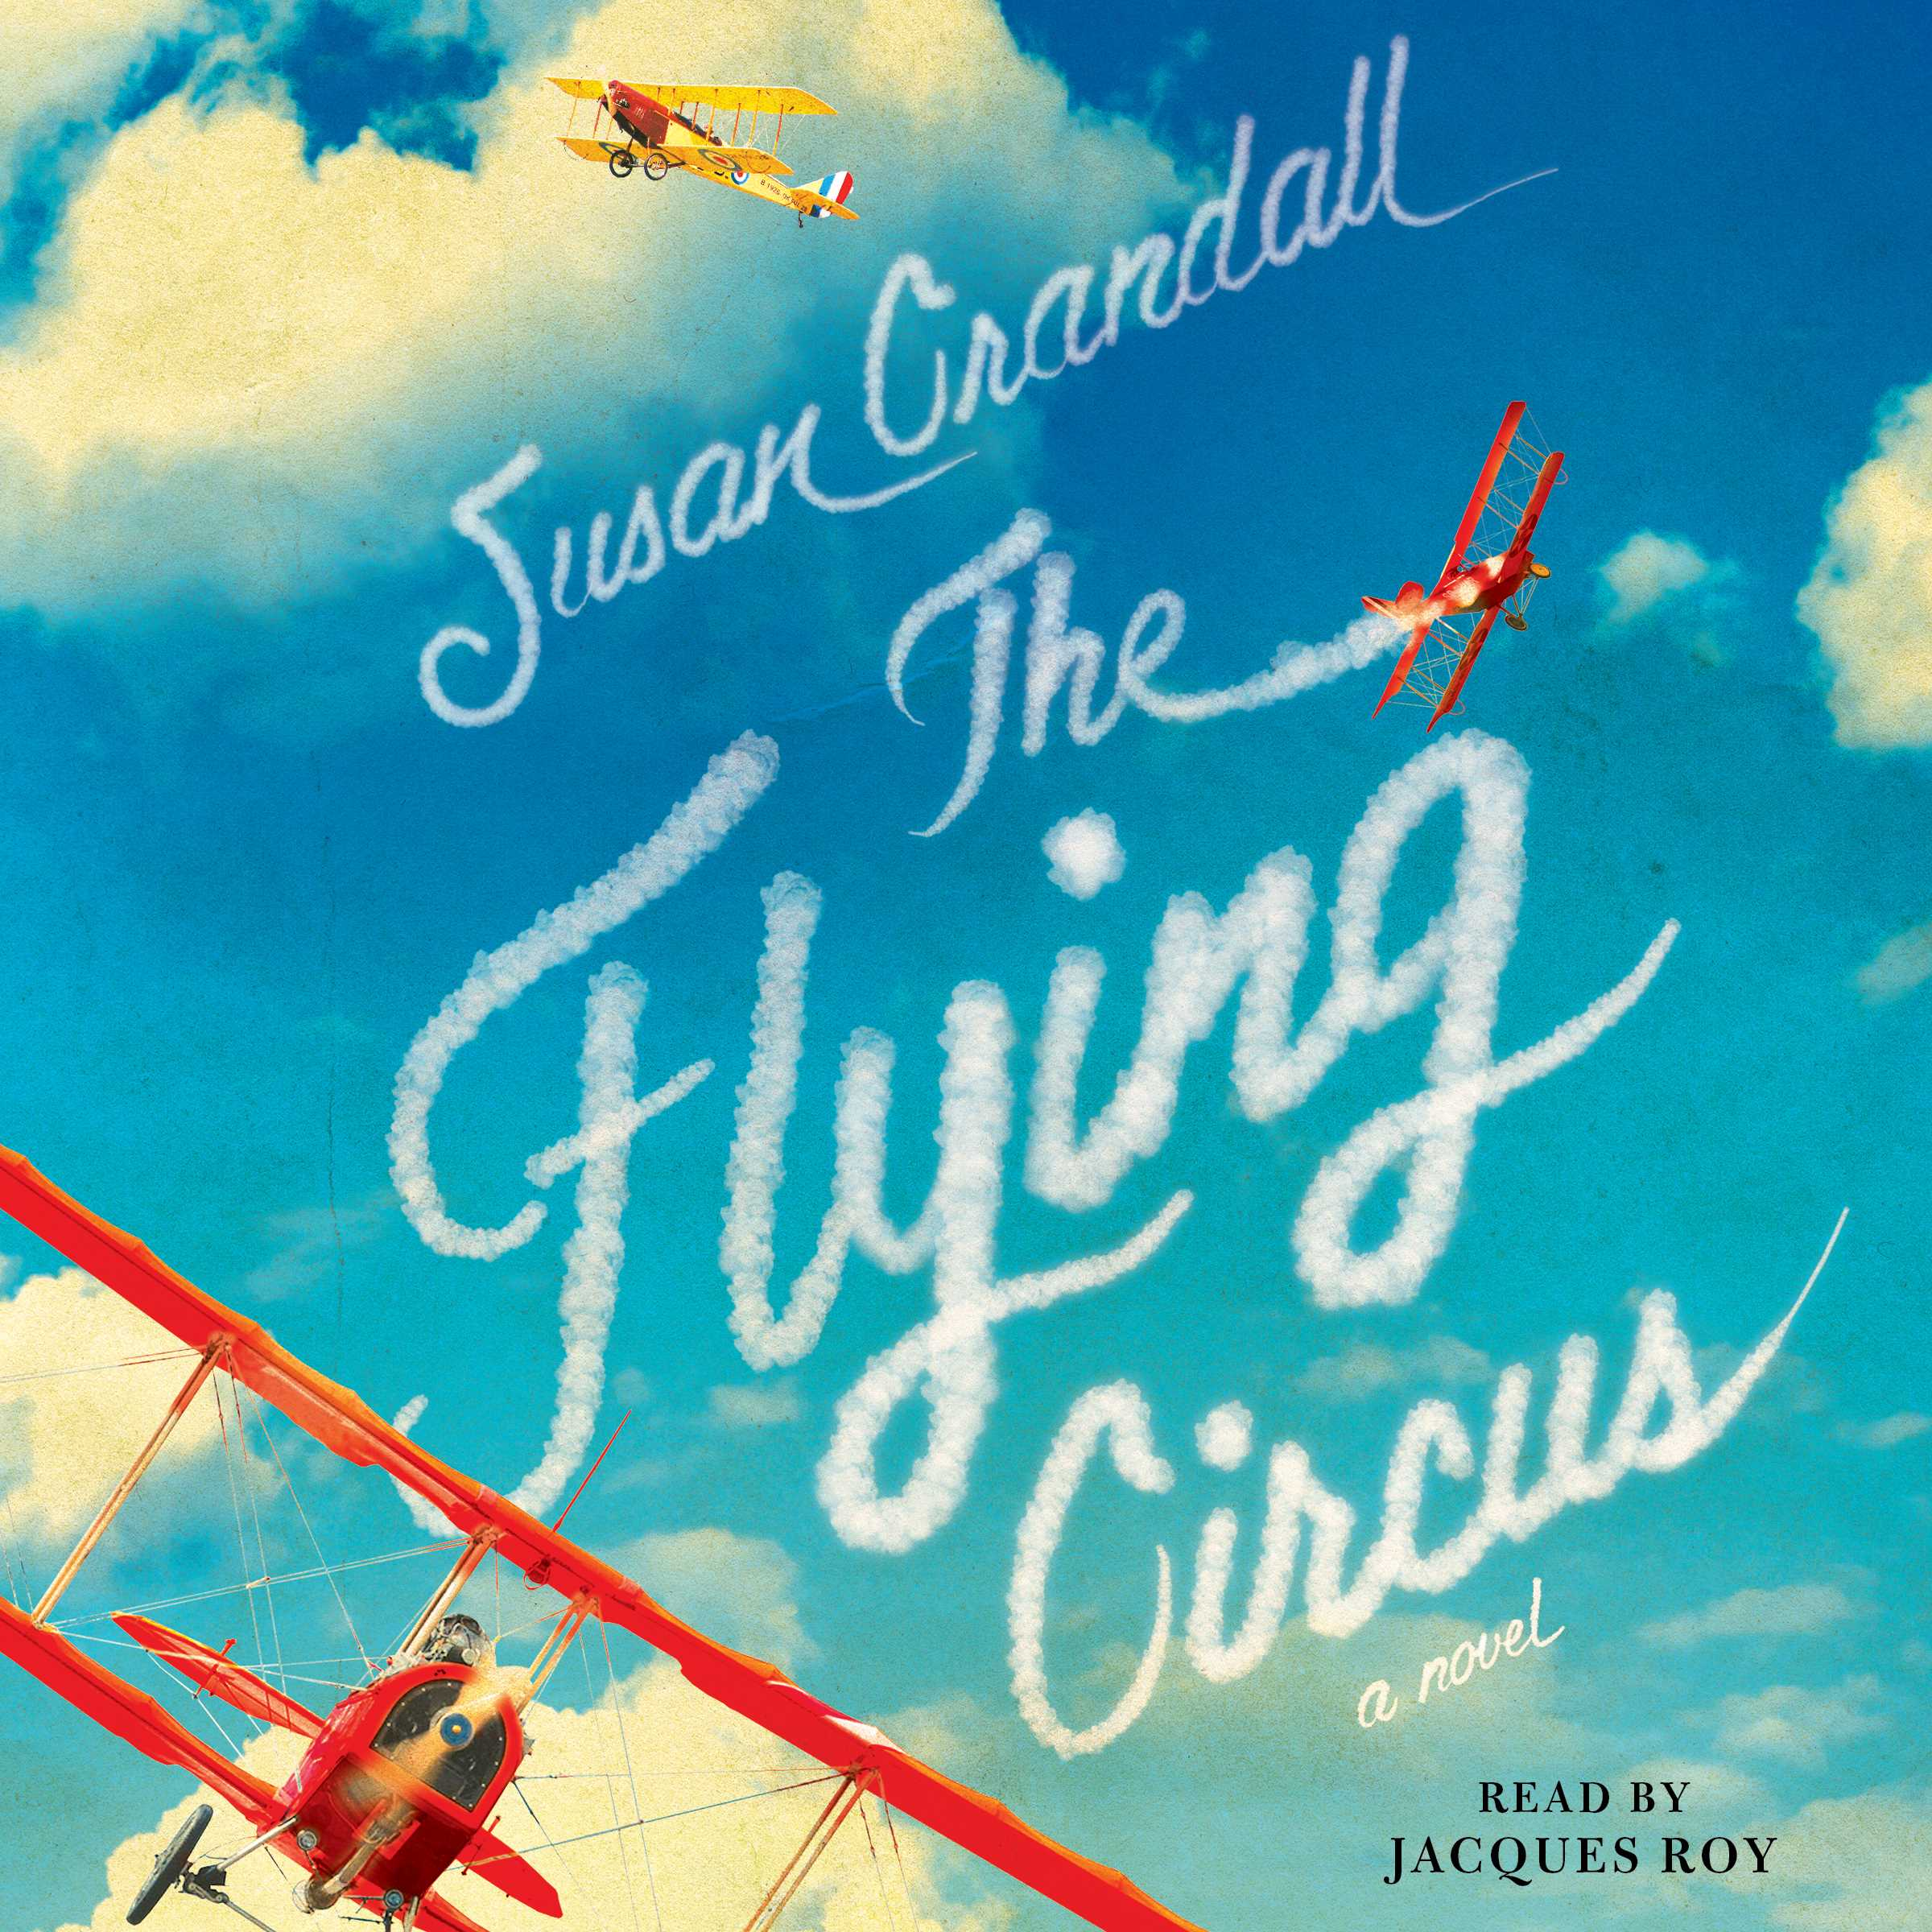 The flying circus 9781442387614 hr